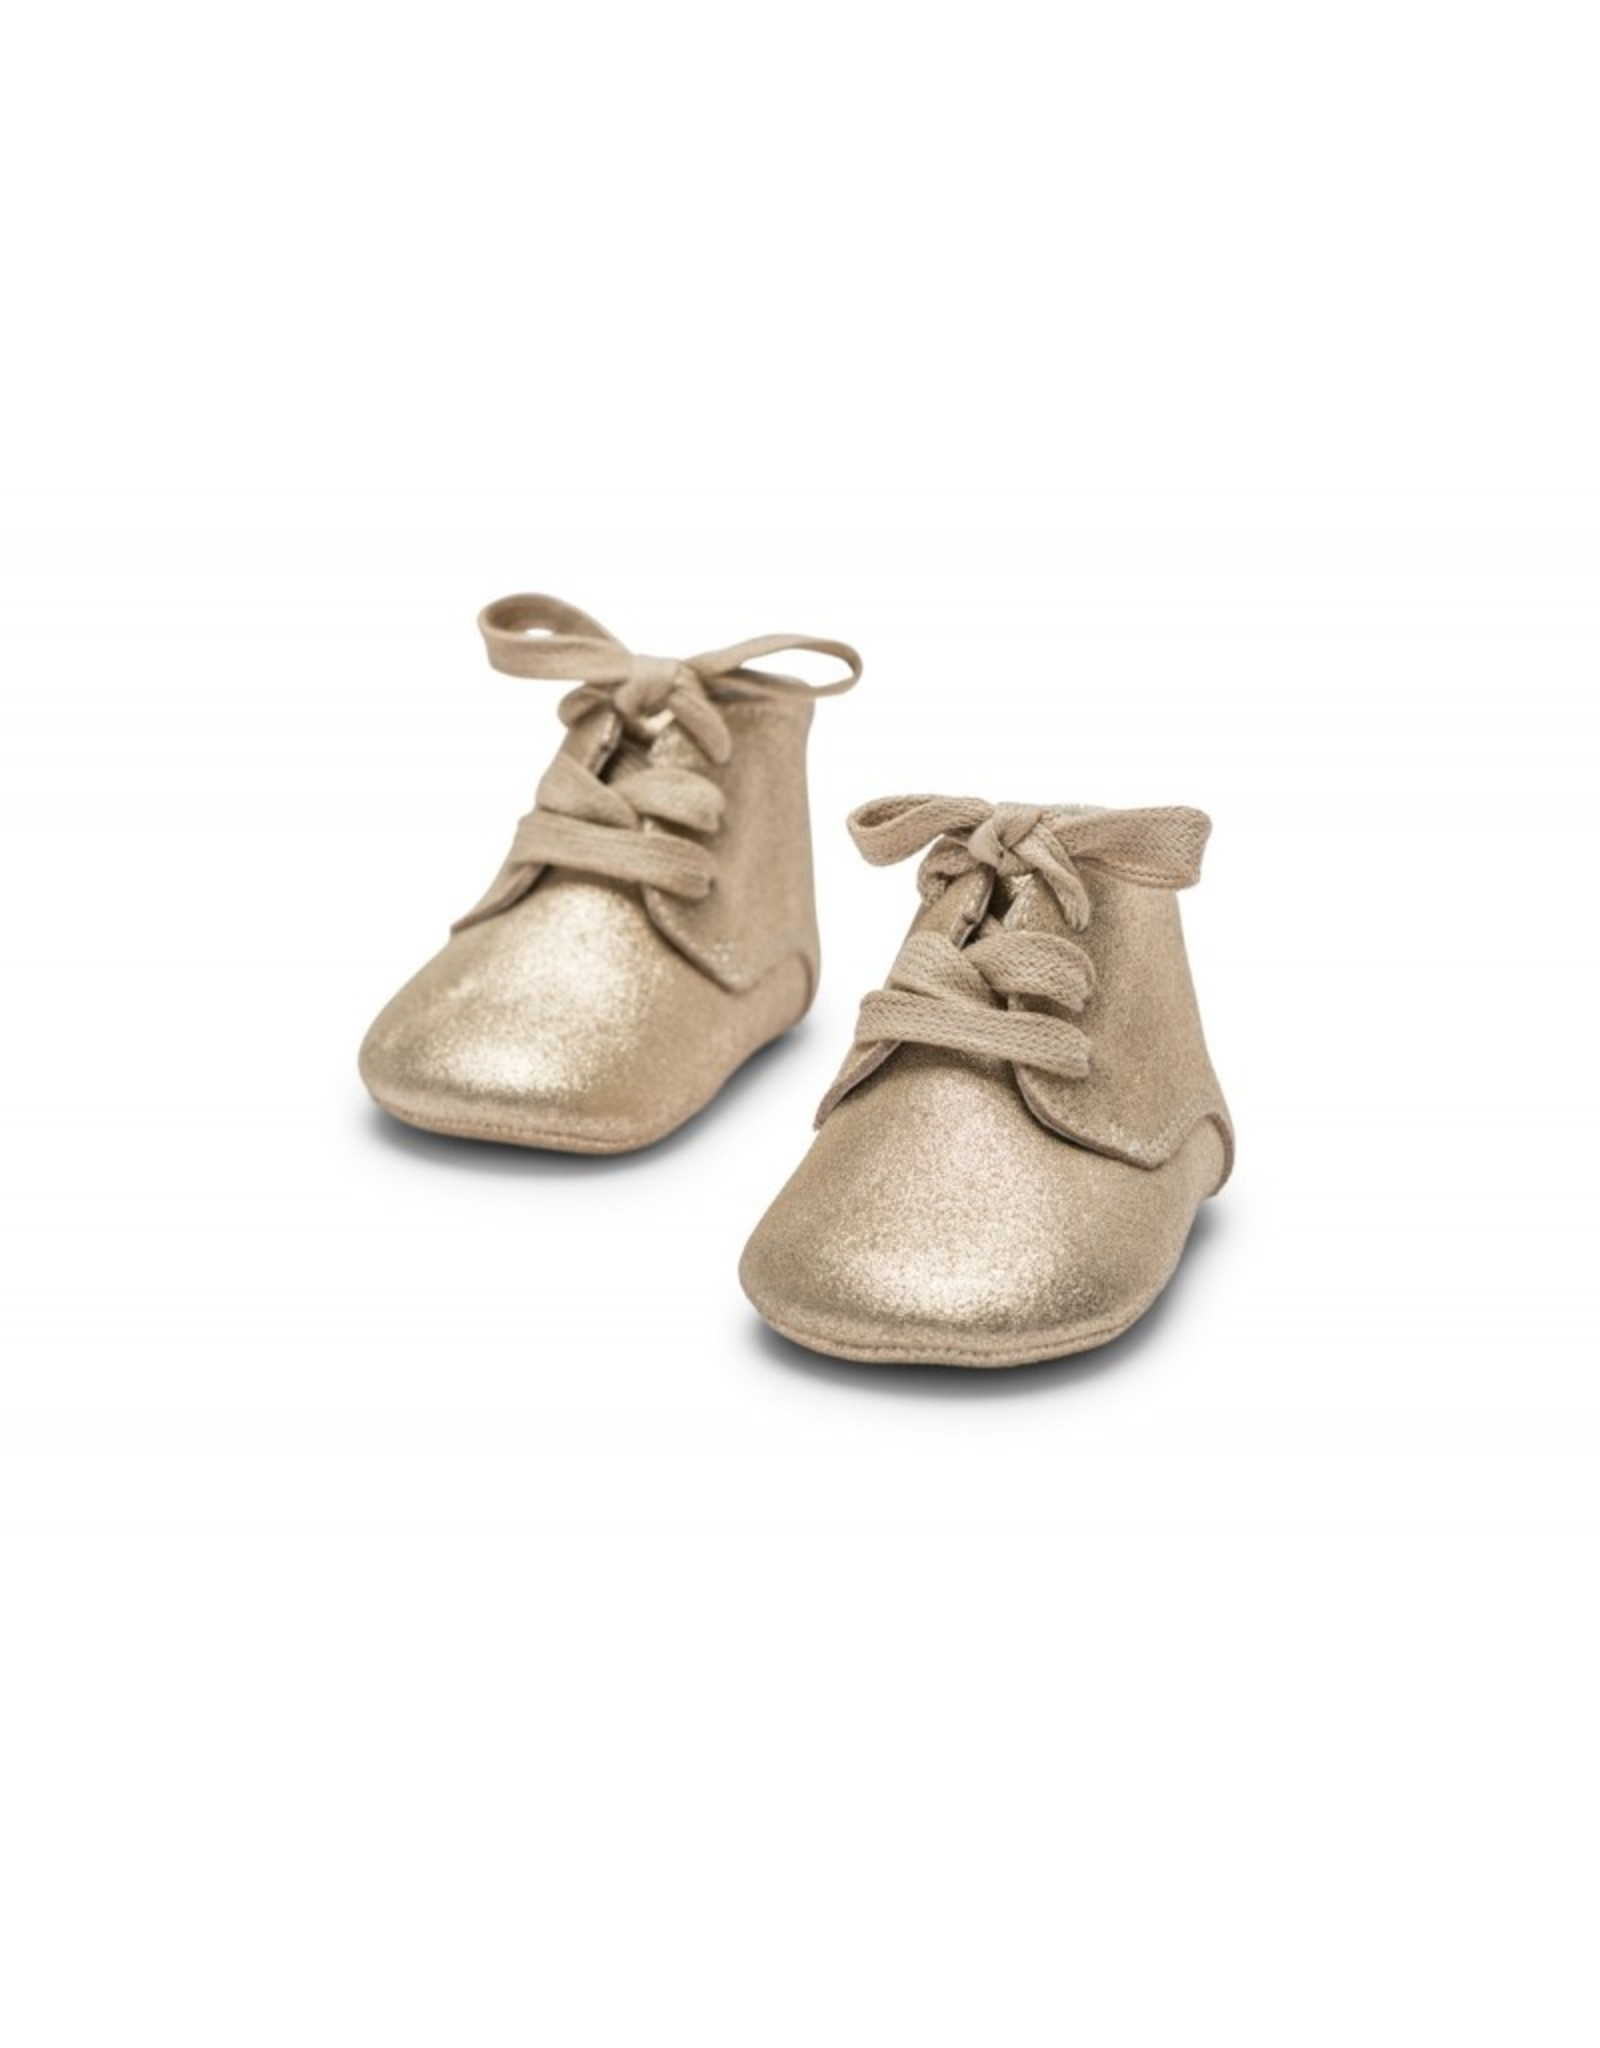 Mockies Mockies Classic Boots Gold - Limited Edition